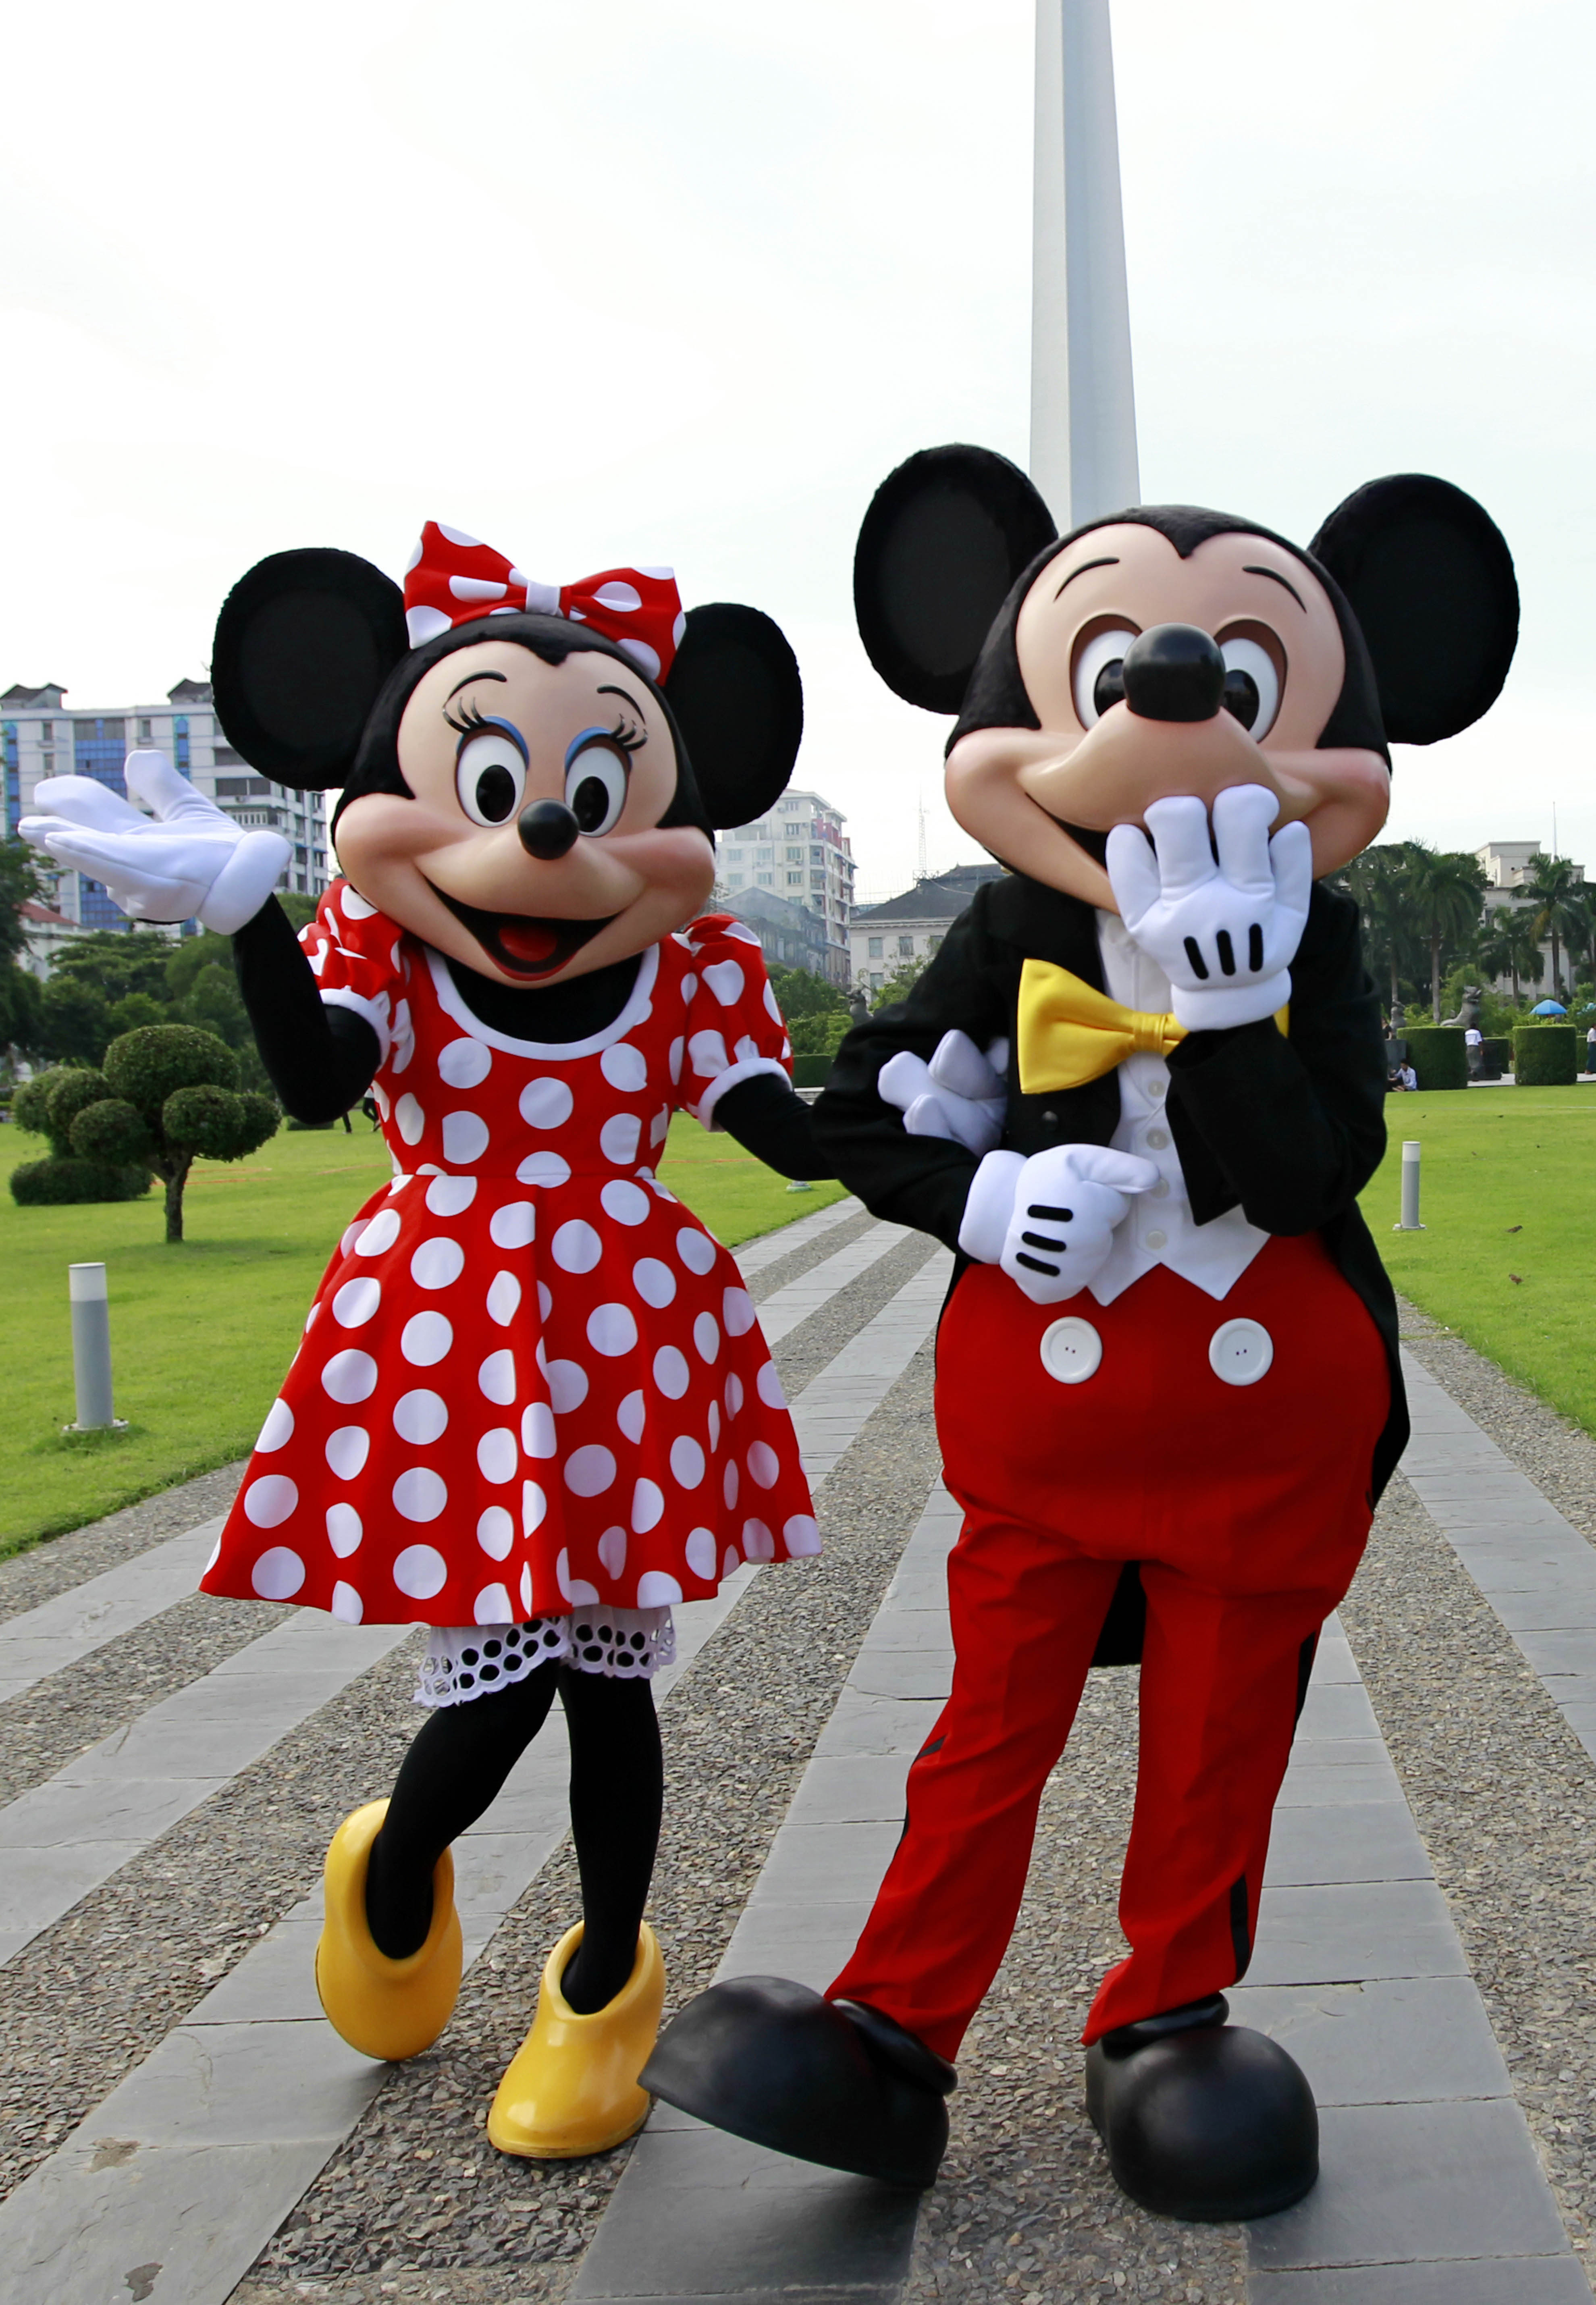 World Famous Disney Characters Mickey Mouse (l) and Minnie Mouse (r) Pose For Photos in Front of the Independence Monument in Yangon Myanmar 25 September 2014 the Walt Disney Characters Are on a Tour in Myanmar to Promote the 'Disney Live!' Presentation of Three Classic Fairy Tales Featuring More Than 25 Disney Characters Such As Snow White and the Seven Dwarfs Cinderella and Beauty and the Beast Planned at the Myanmar Event Park From 08 to 12 October 2014 Myanmar YangonDisney Characters in Myanmar - Sep 2014